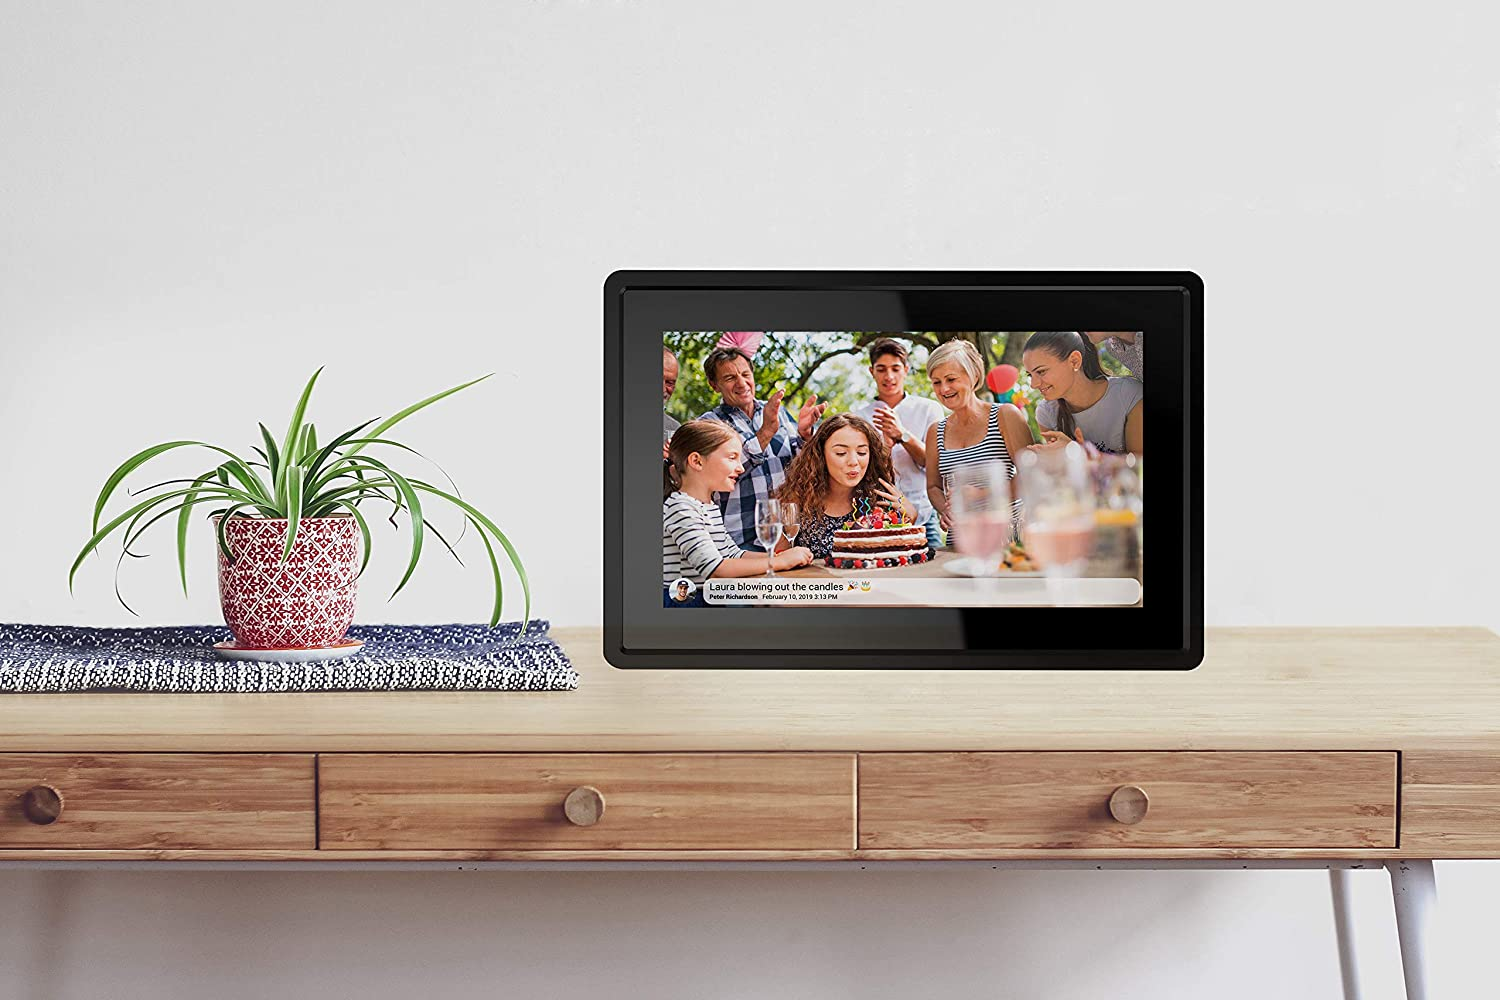 Feelcare 7 Inch 16GB Smart WiFi Digital Picture Frame, Send Photos or Small Videos from Anywhere, Touch Screen, IPS LCD Panel, Wall-Mountable, Portrait and Landscape(Black) : Electronics